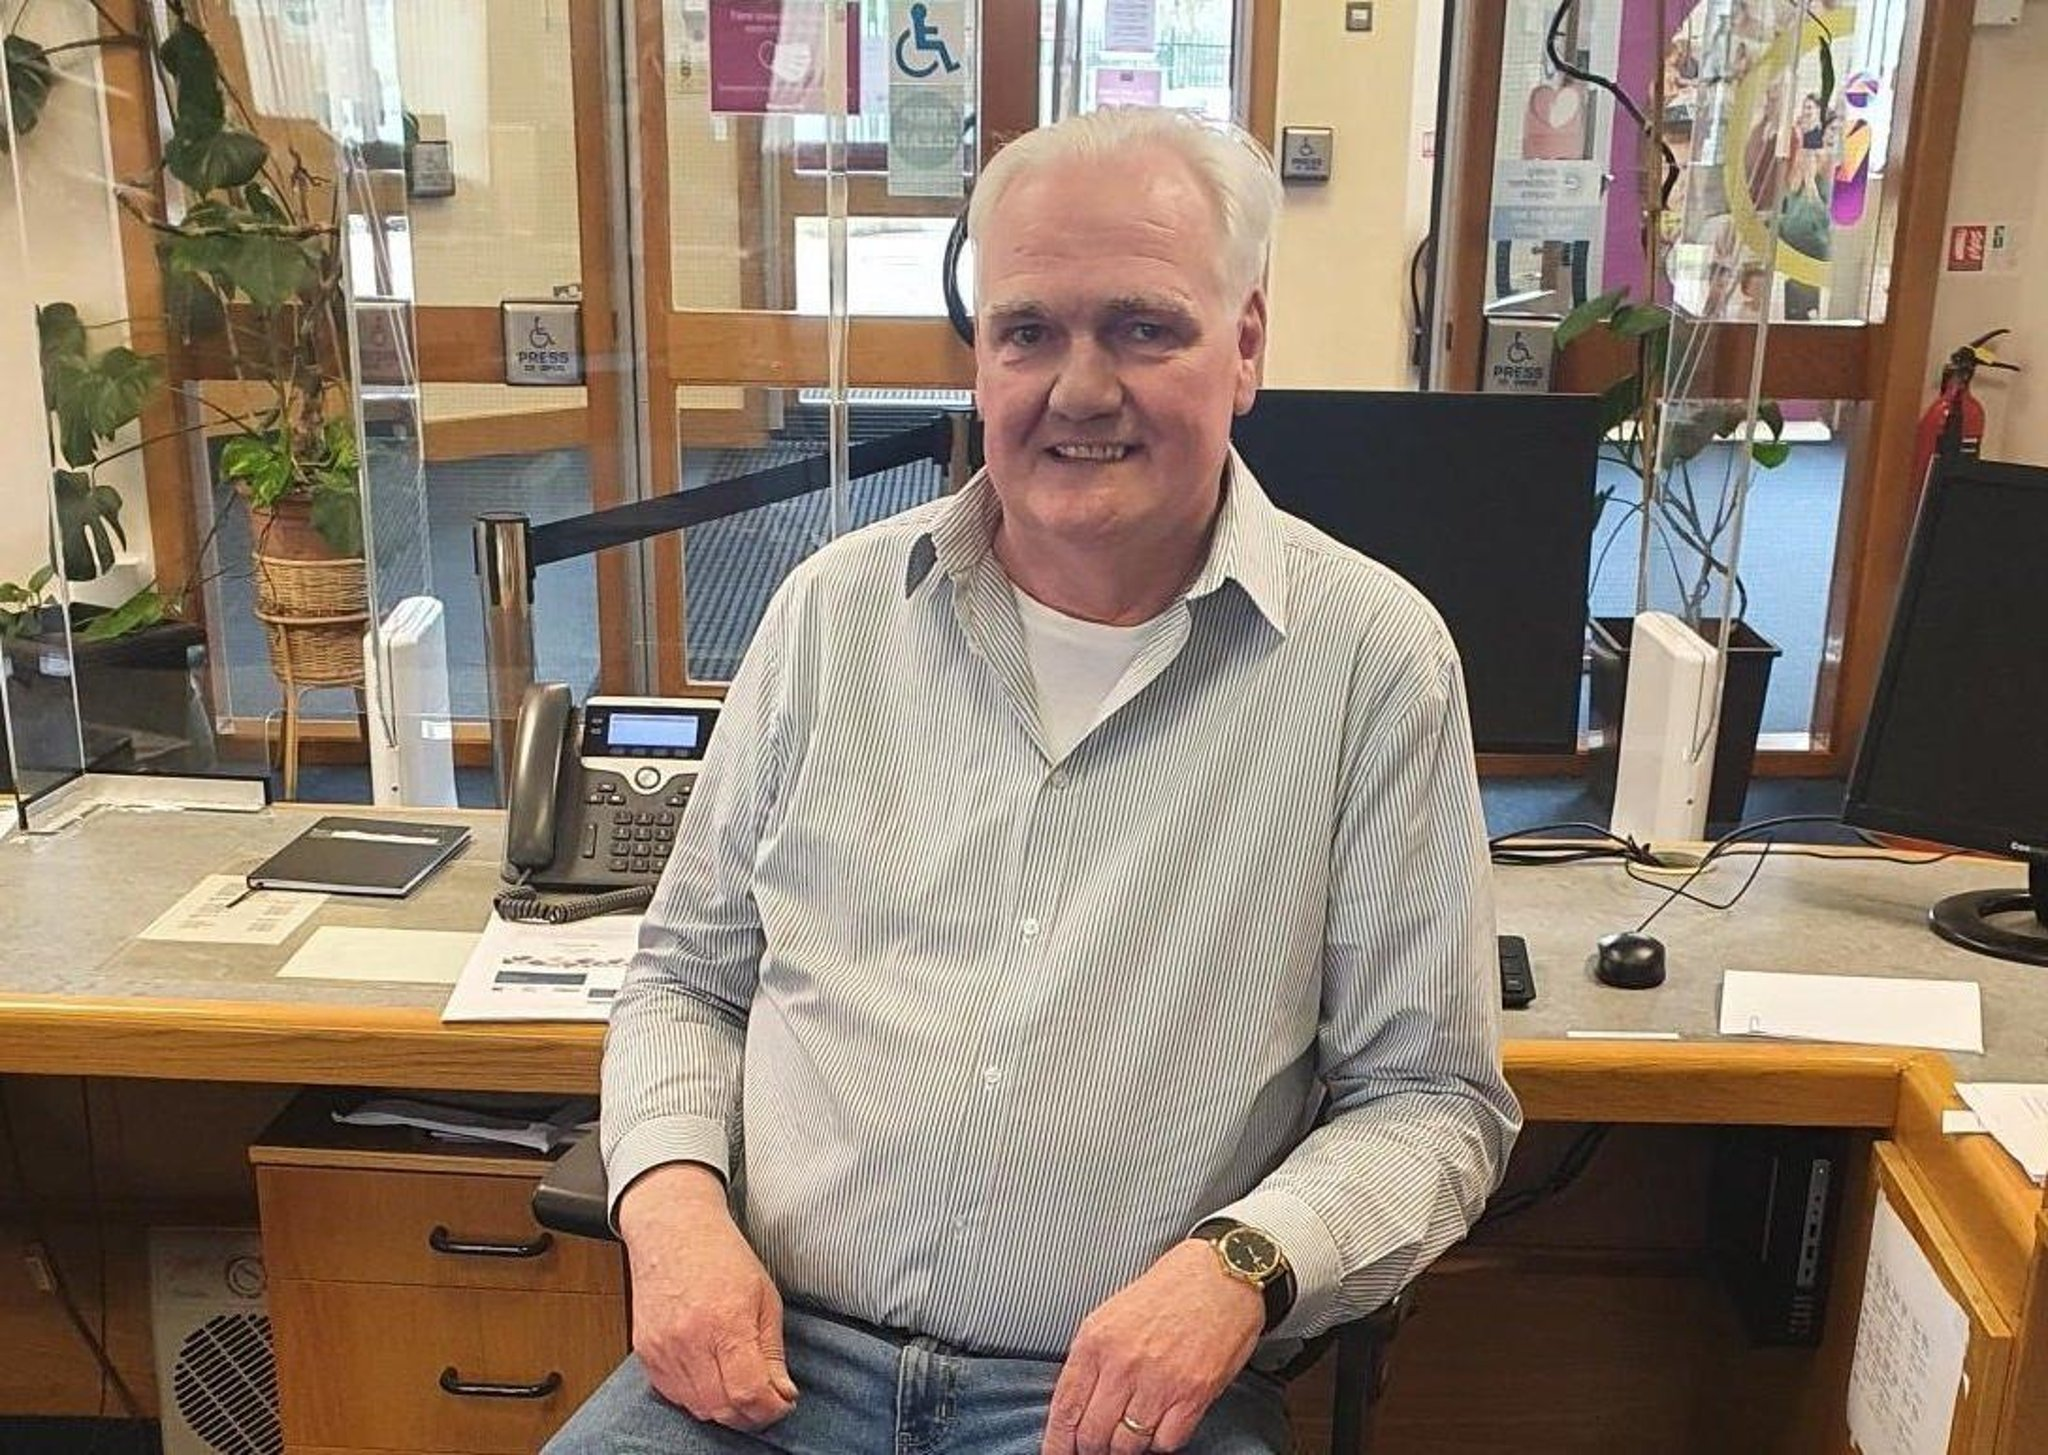 Beloved Creggan librarian hangs up his books after 47 years